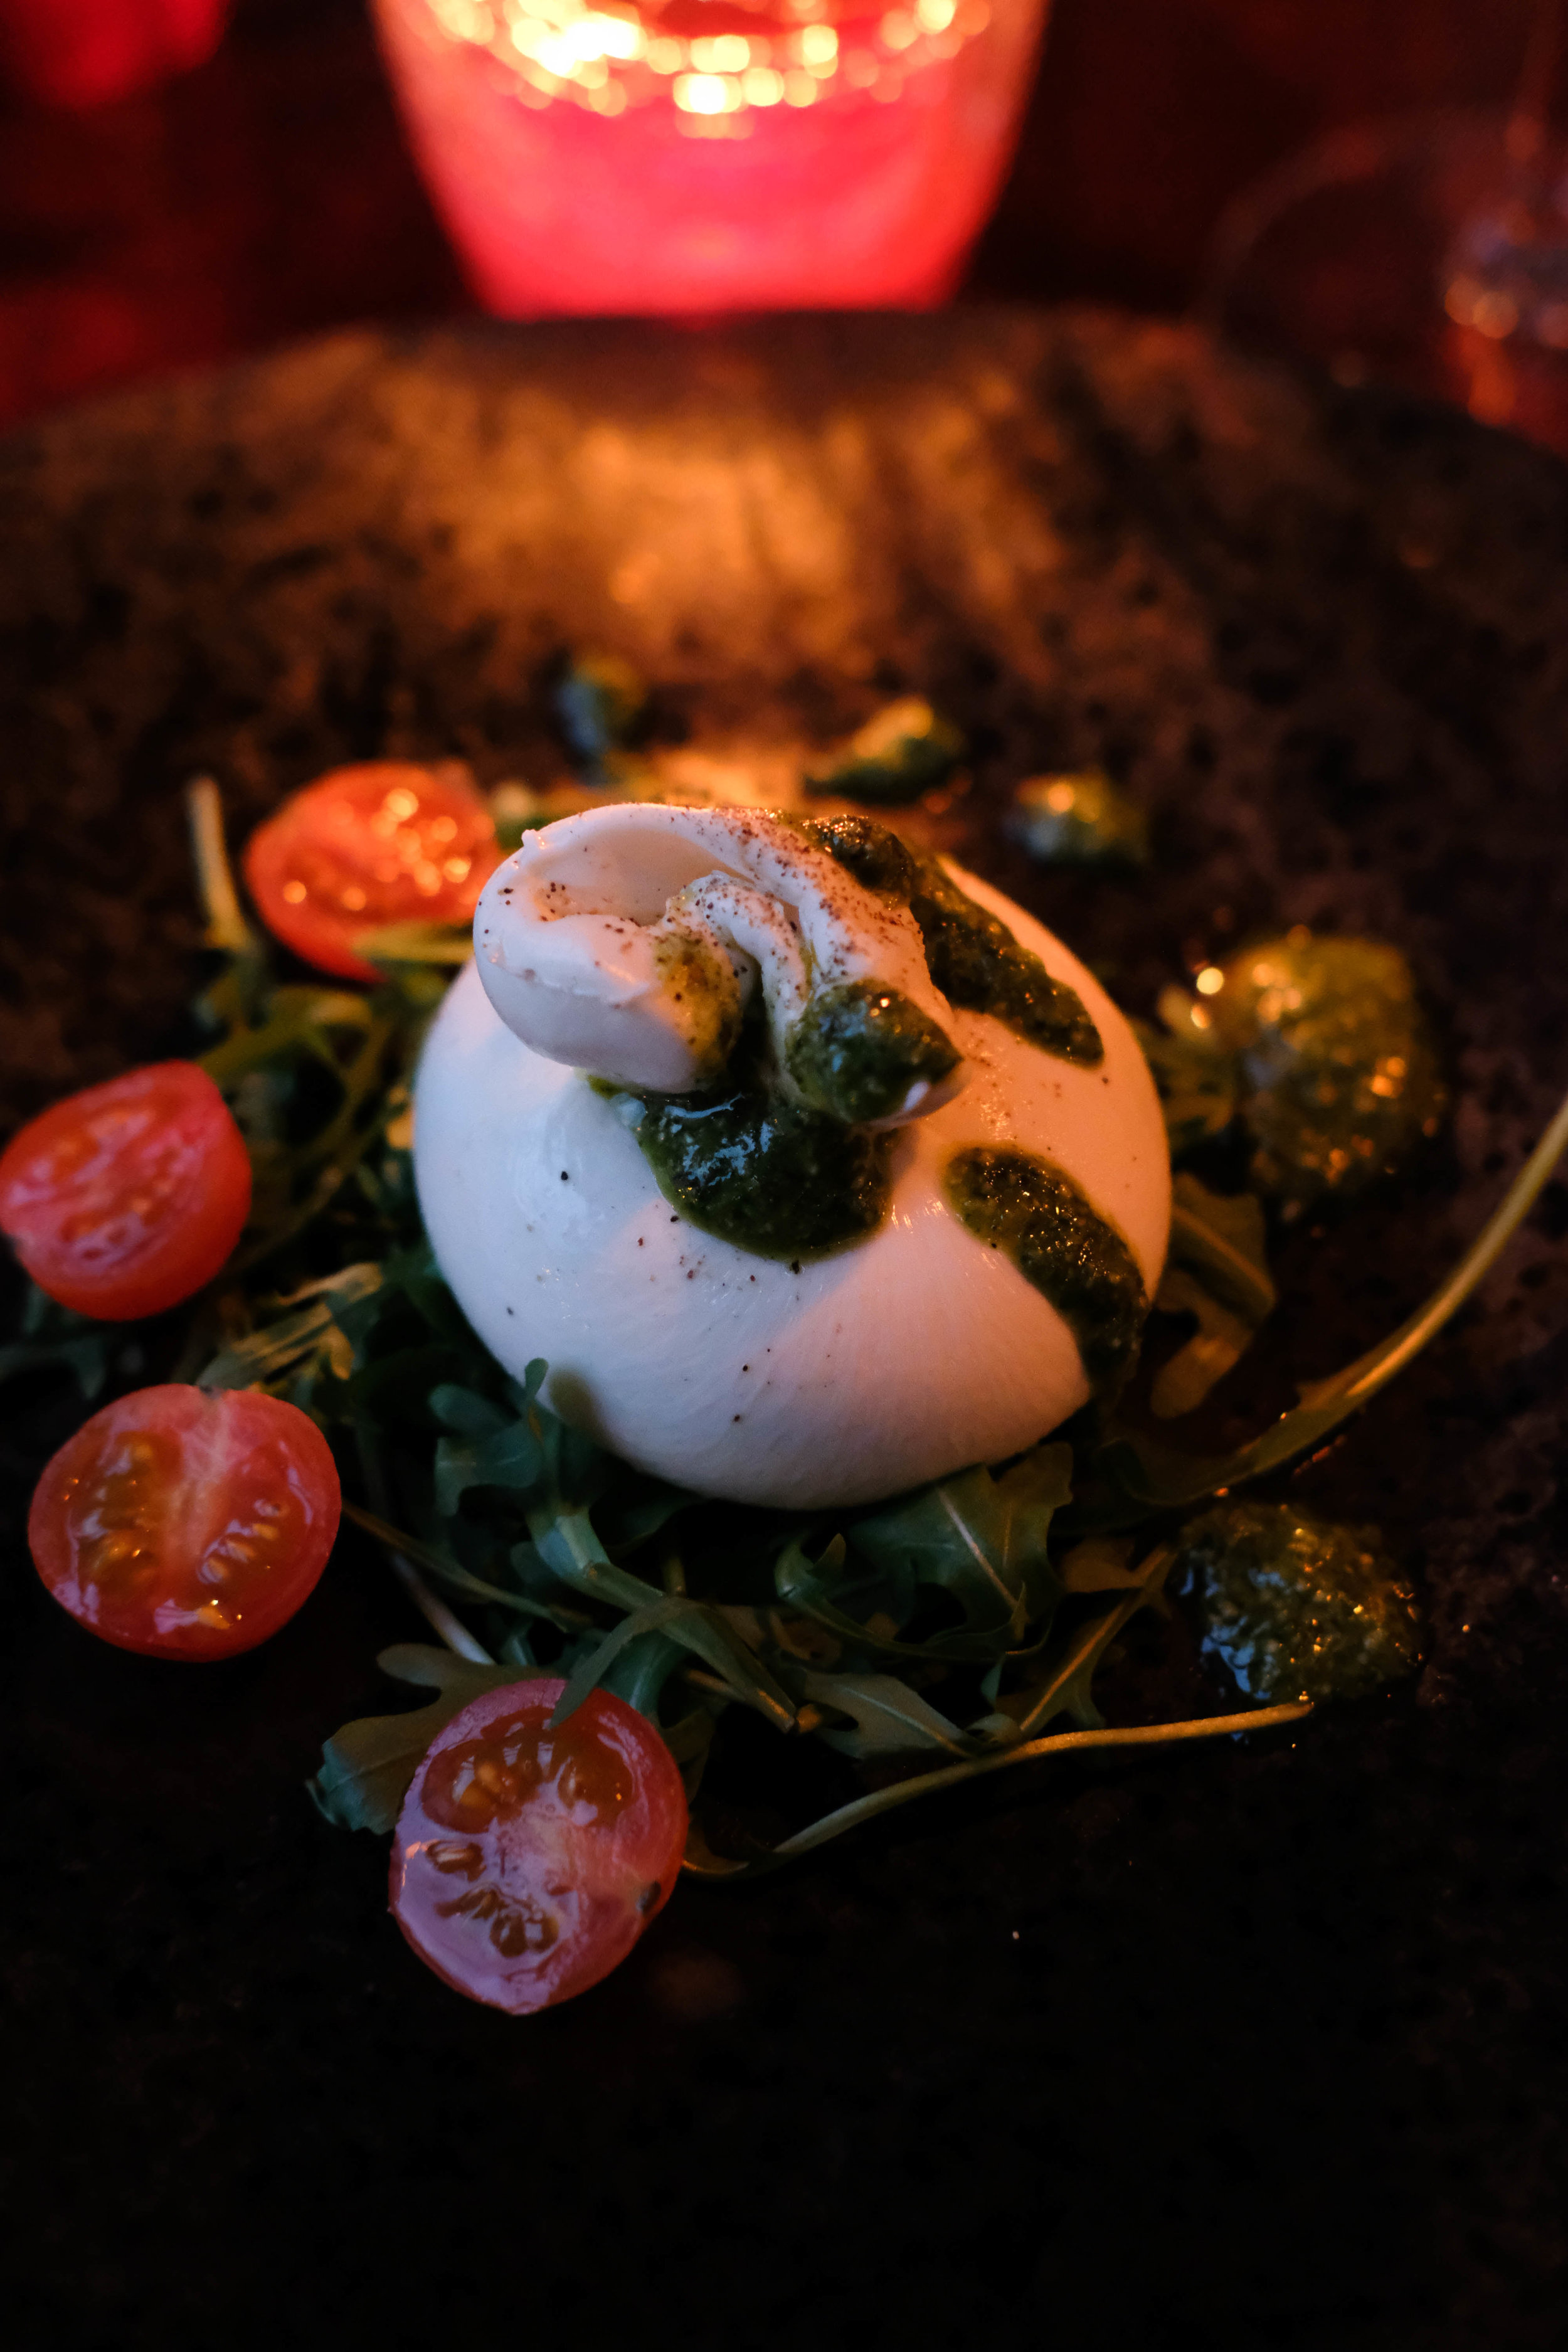 "<p style=""font-family:brandon-grotesque;font-weight:500; font-size:11px; text-center:left; color:light grey;letter-spacing: 1px"">FEBRUARY 16, 2018 • BURRATA • �Bath, UK 🇬🇧</p>"